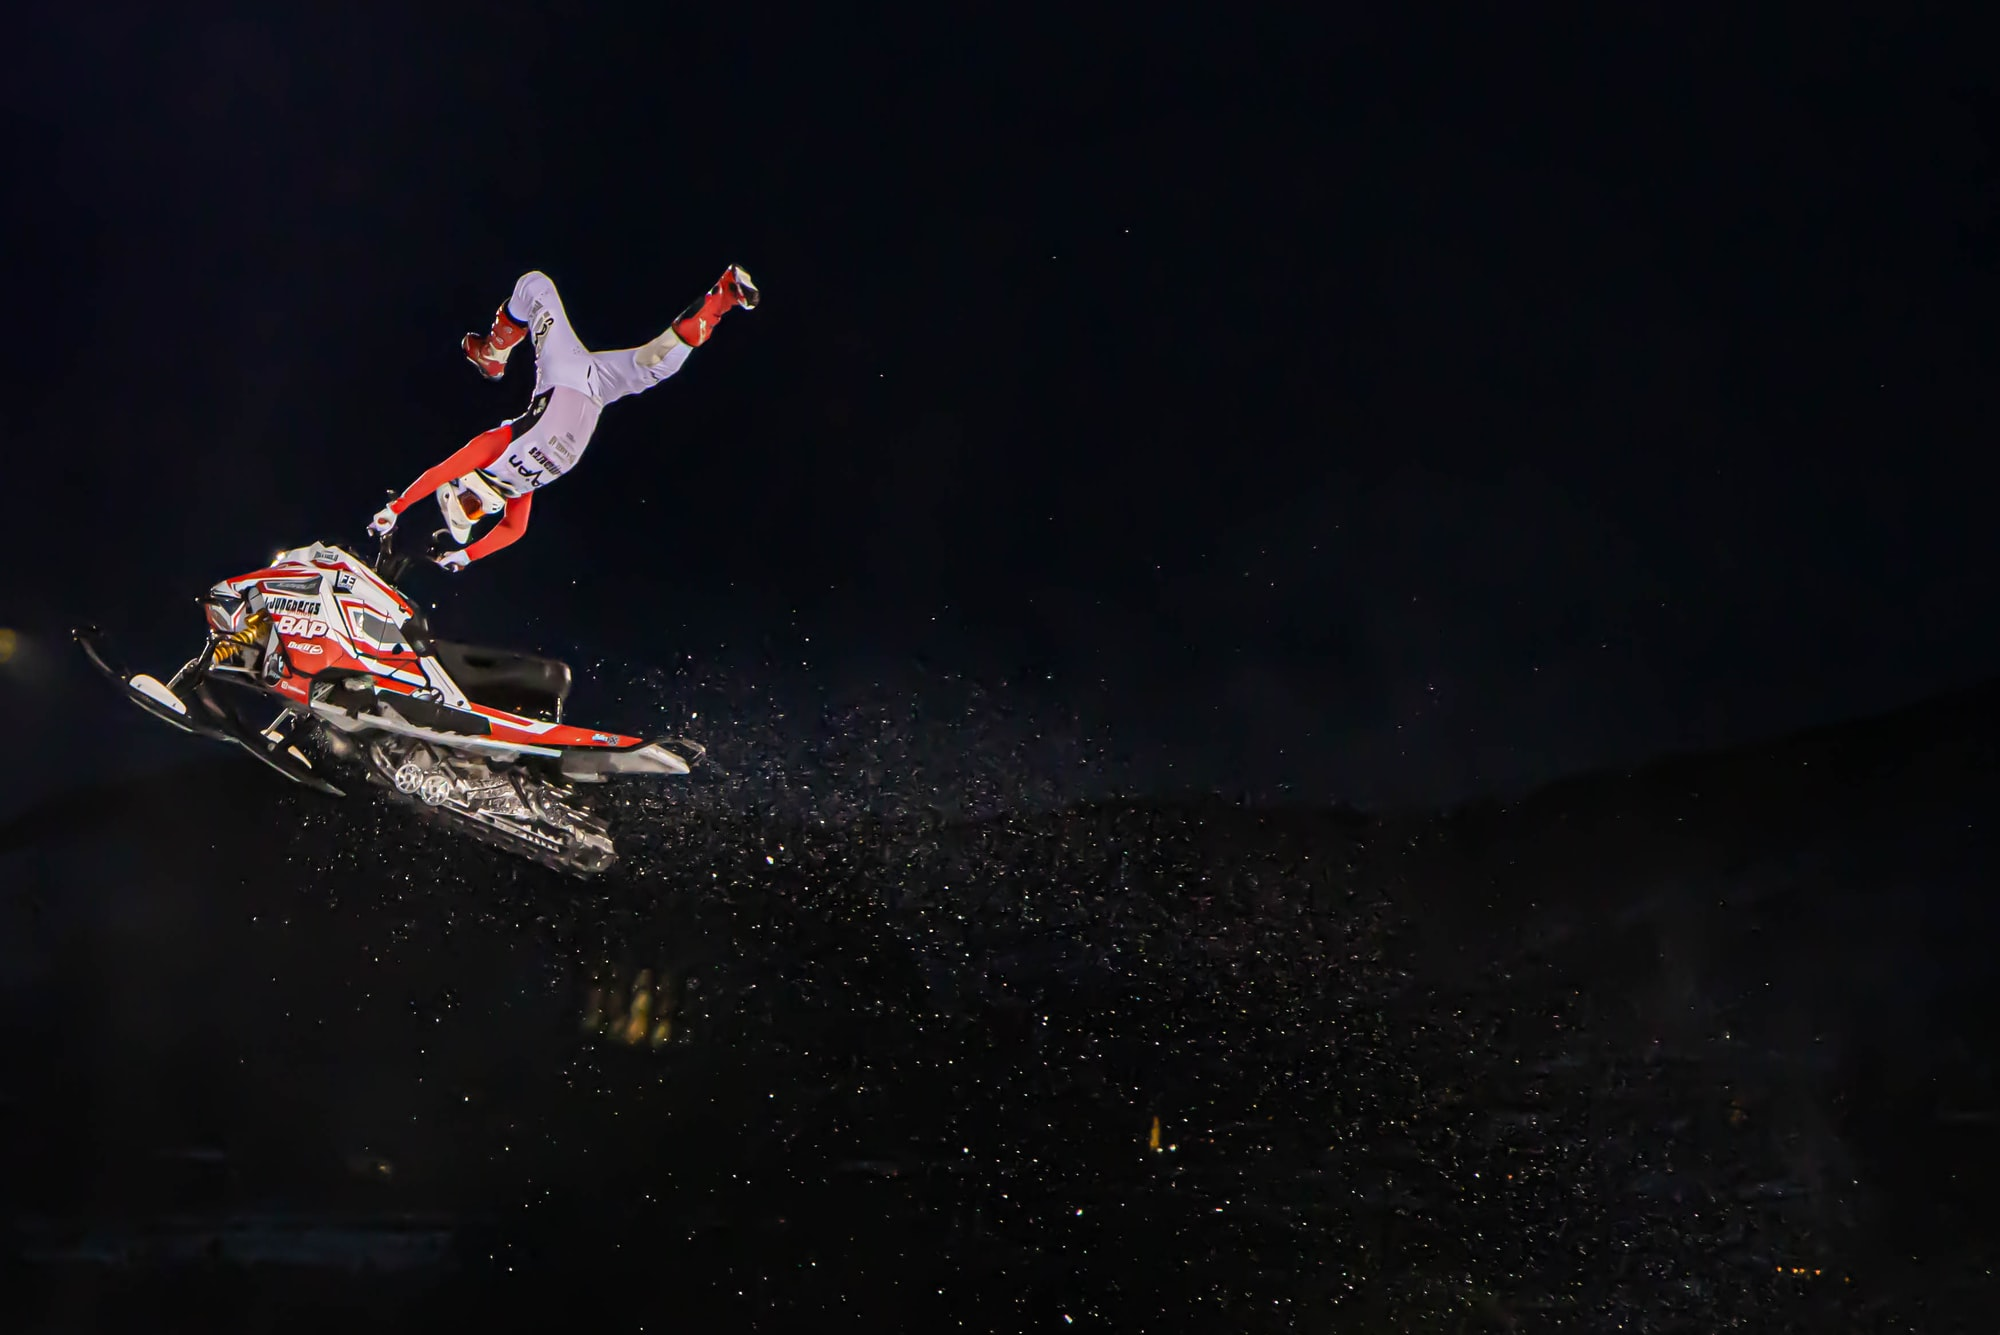 How to watch X Games: live stream X Games 2019 online from anywhere